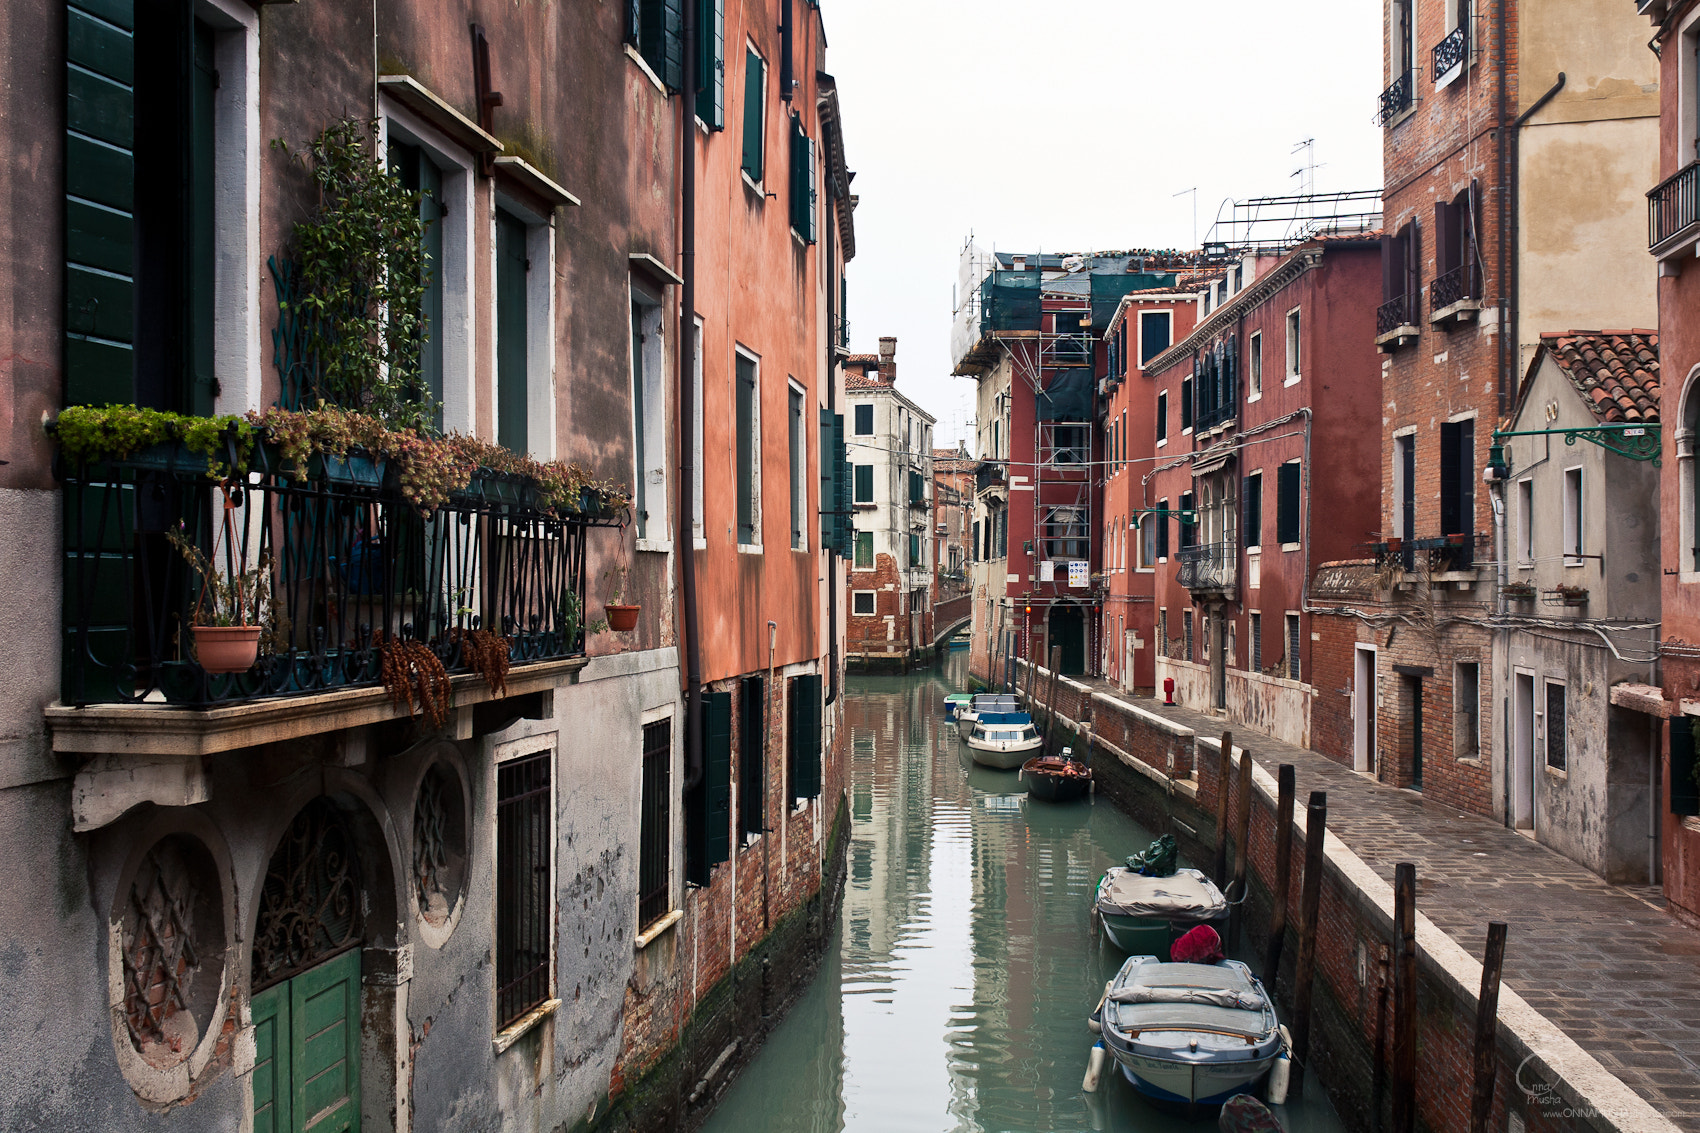 Photograph Venise typique - II by Audrey Meffray on 500px